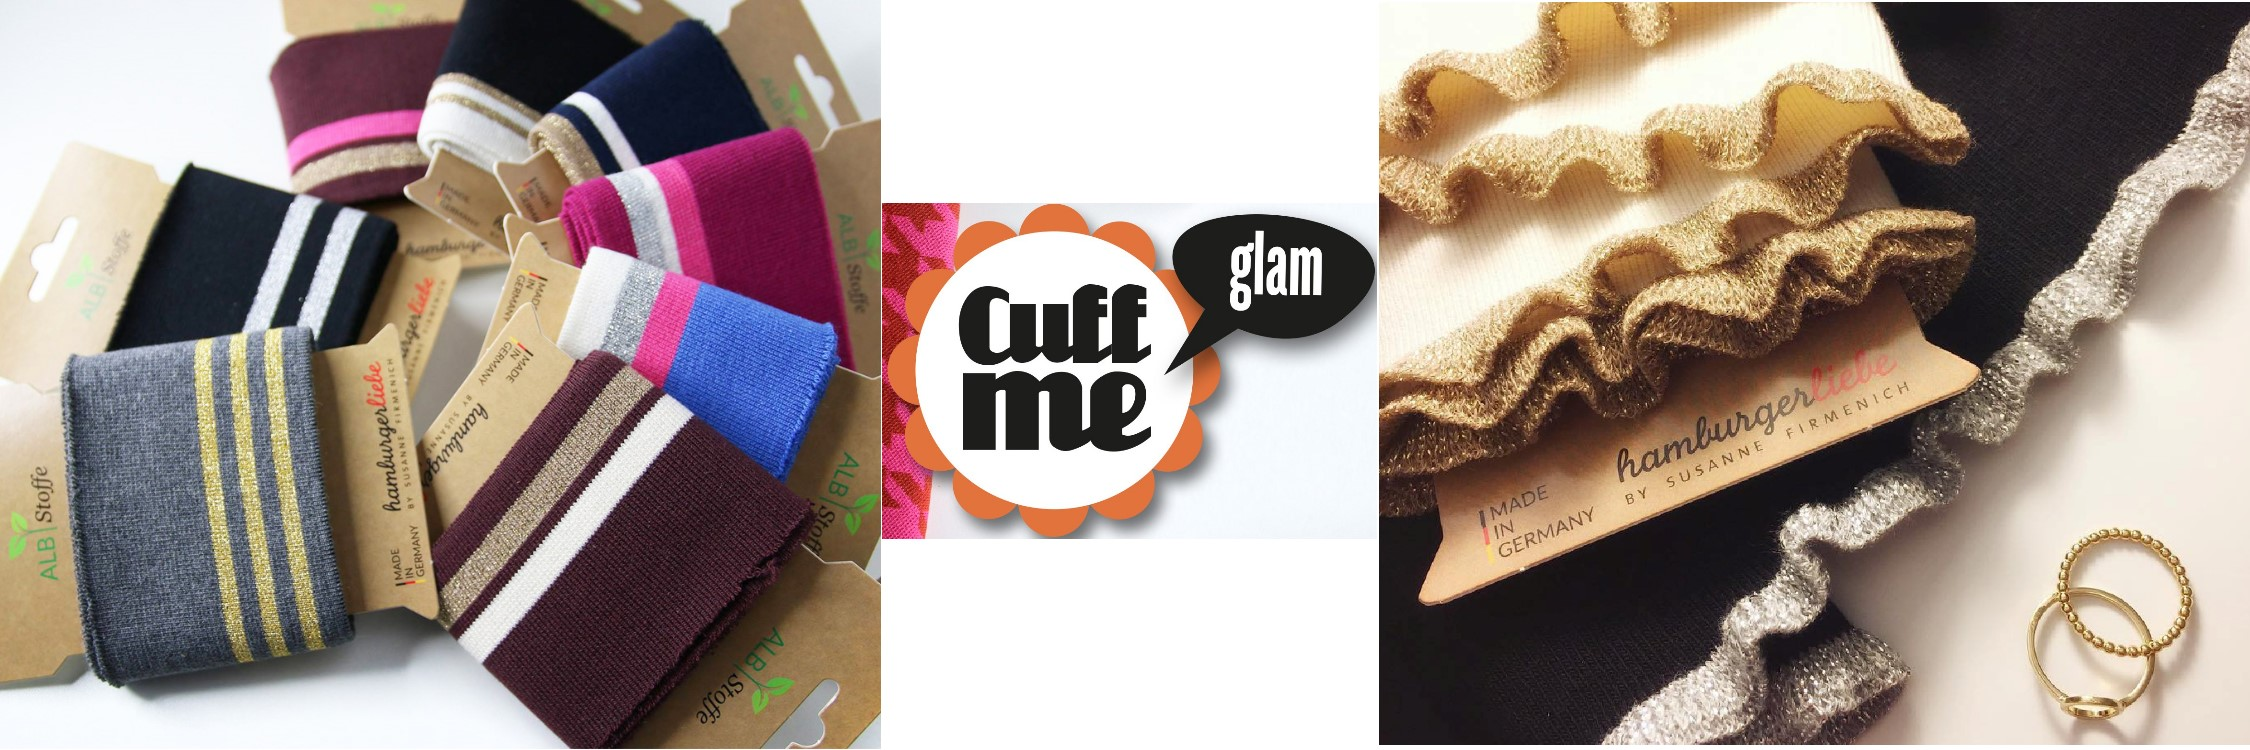 Cuff Me Glam limited Edition - Hamburger Lieb